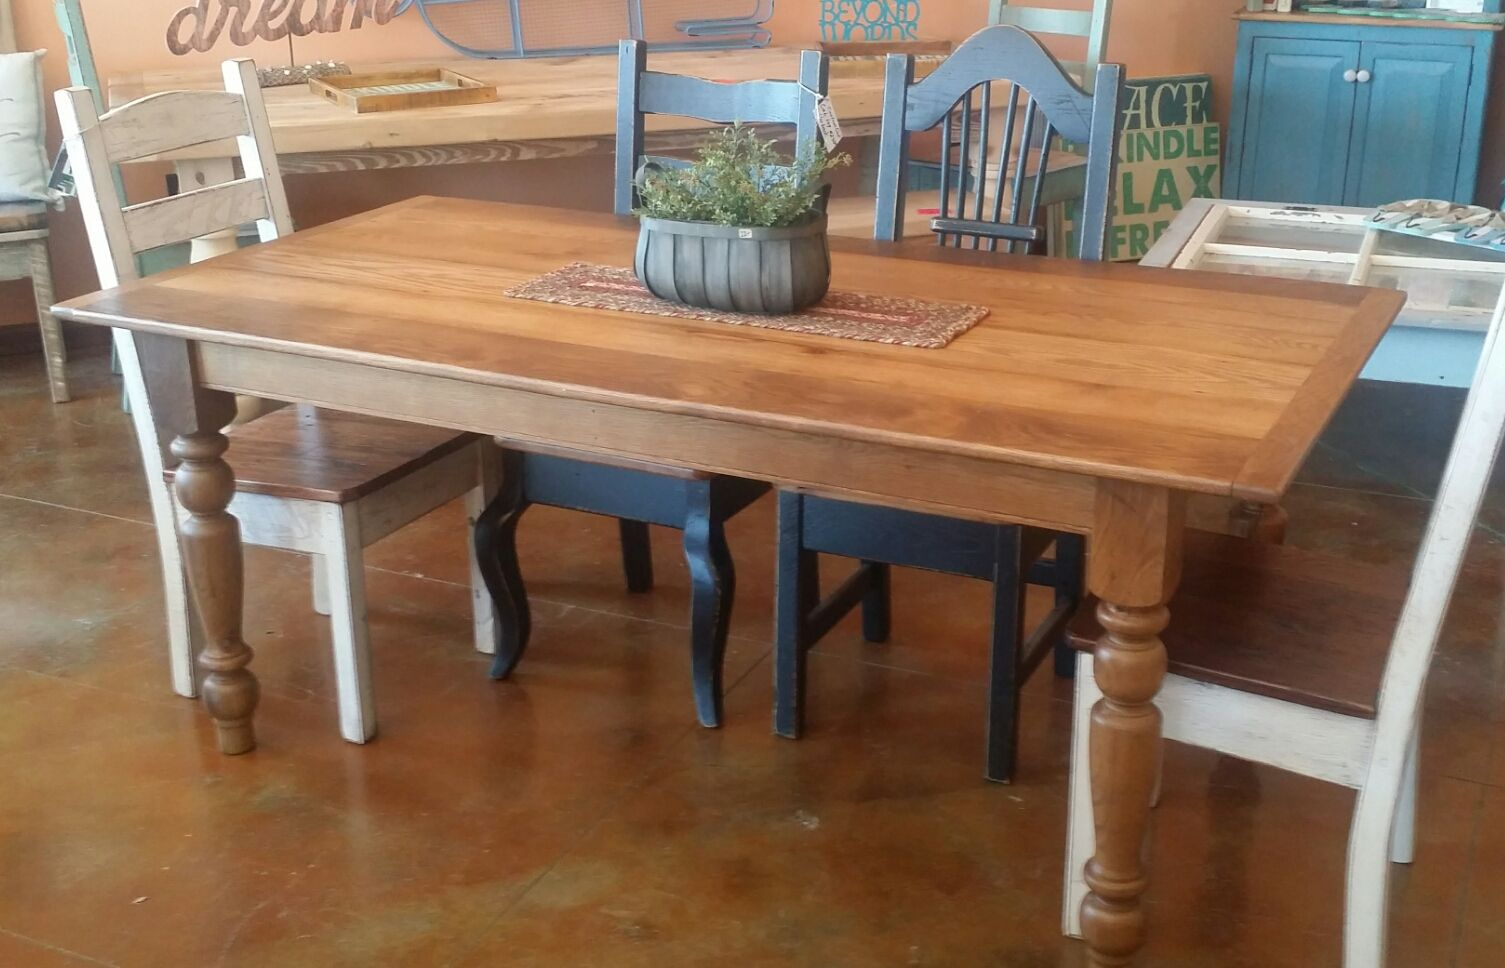 6ft Thin Top Reclaimed Oak Barn Wood Table With Turned Legs Wood